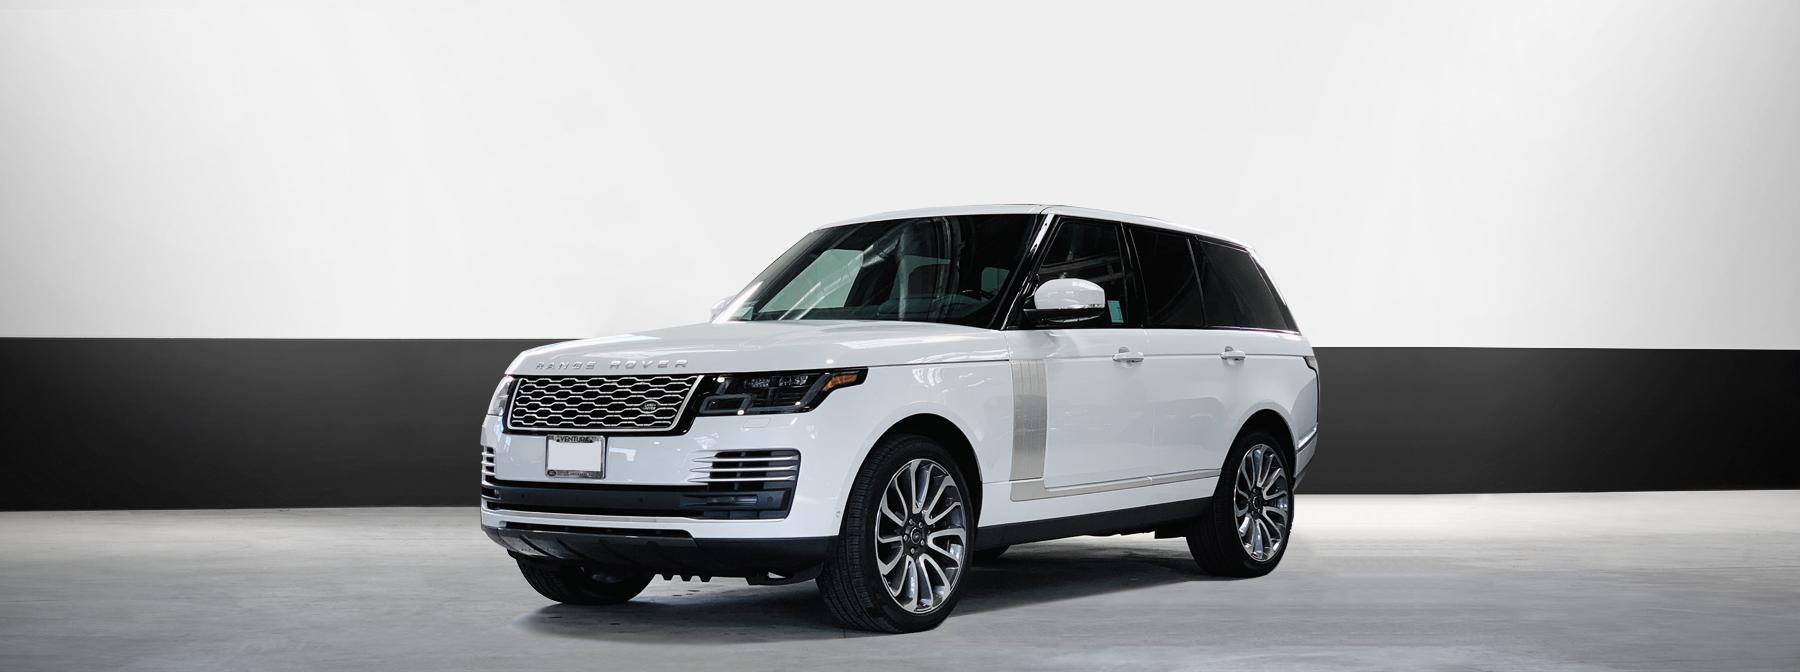 24e2e3939e The 2019 Range Rover Autobiography is here. Powered by a 5.0 L Supercharged  V8